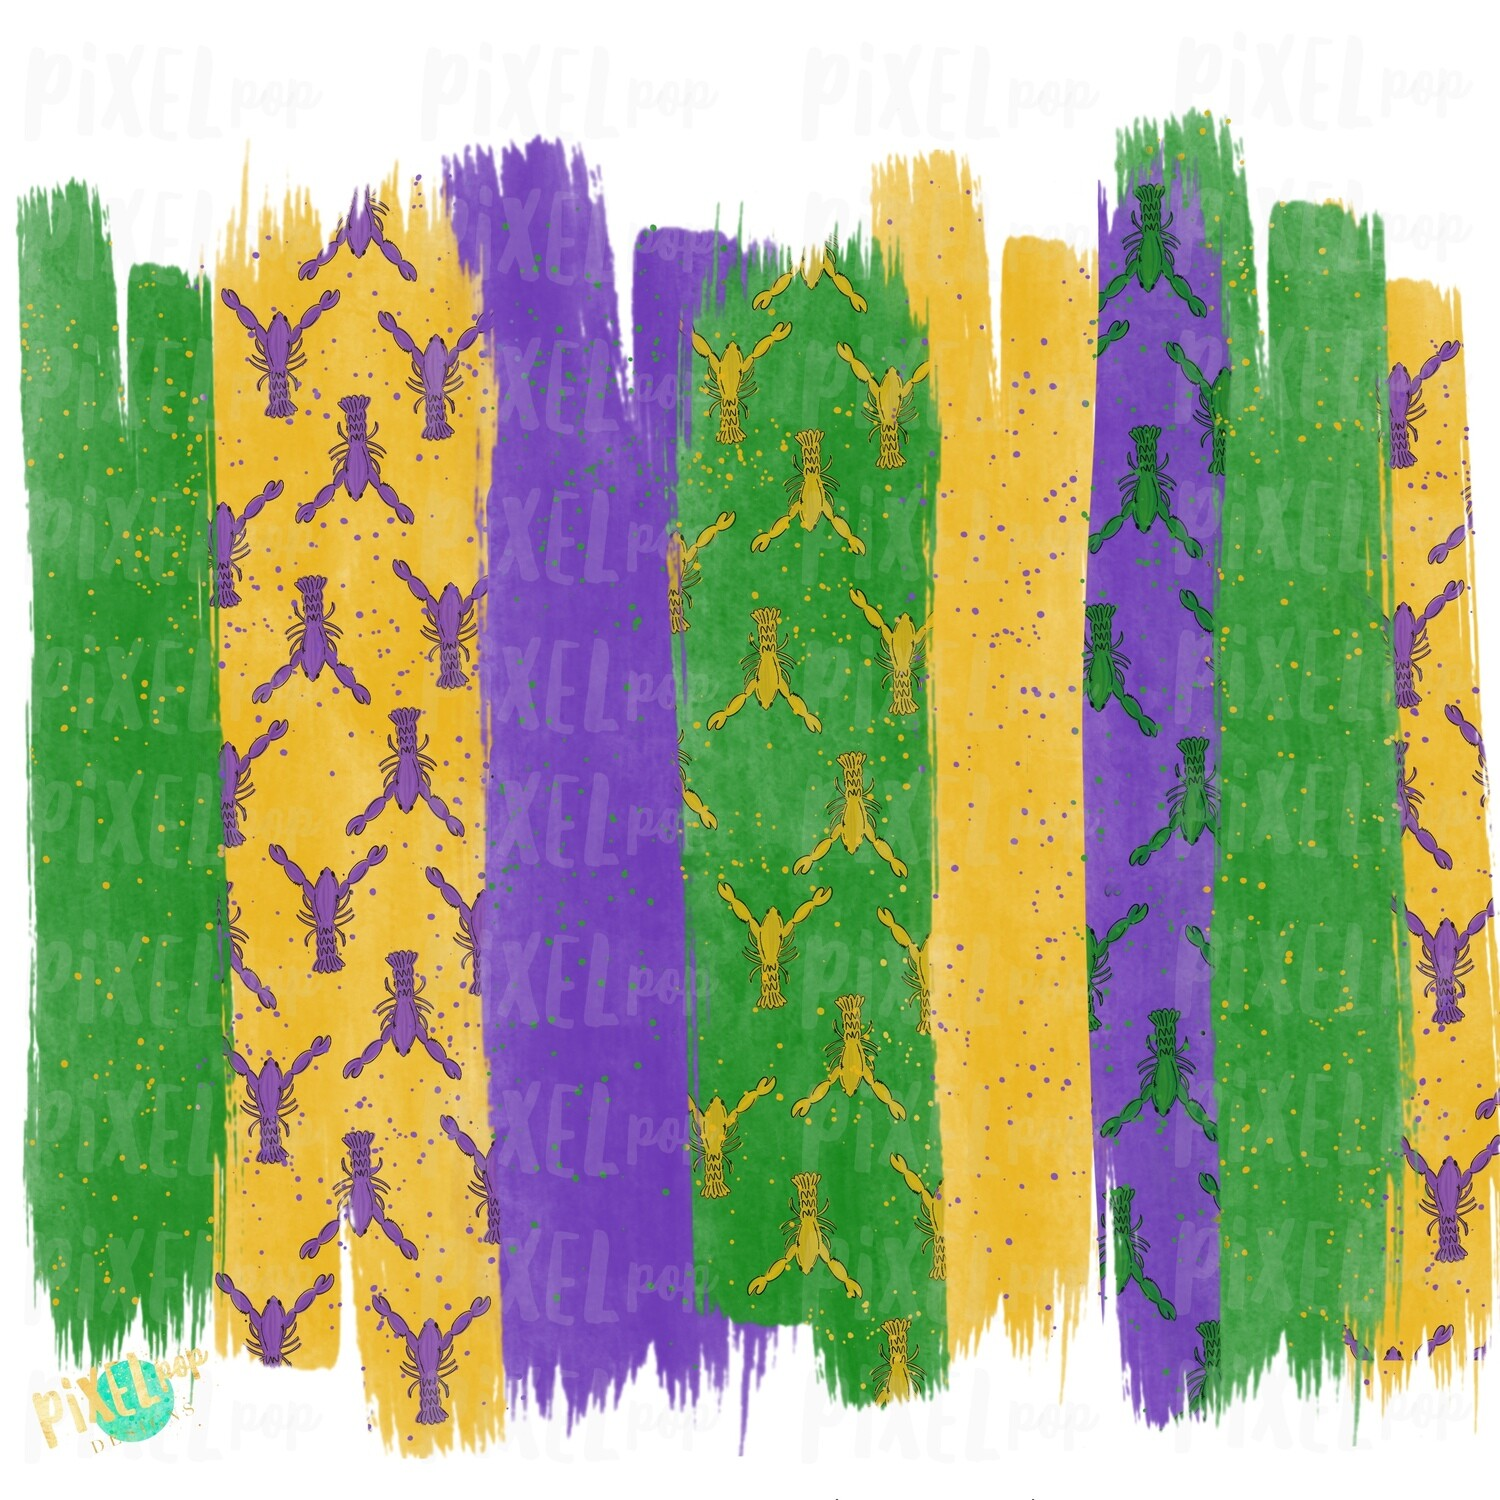 Mardi Gras Crawfish Brush Stroke Background Sublimation PNG | New Orleans | Hand Painted | Mardi Gras Design | Digital Download | Clip Art